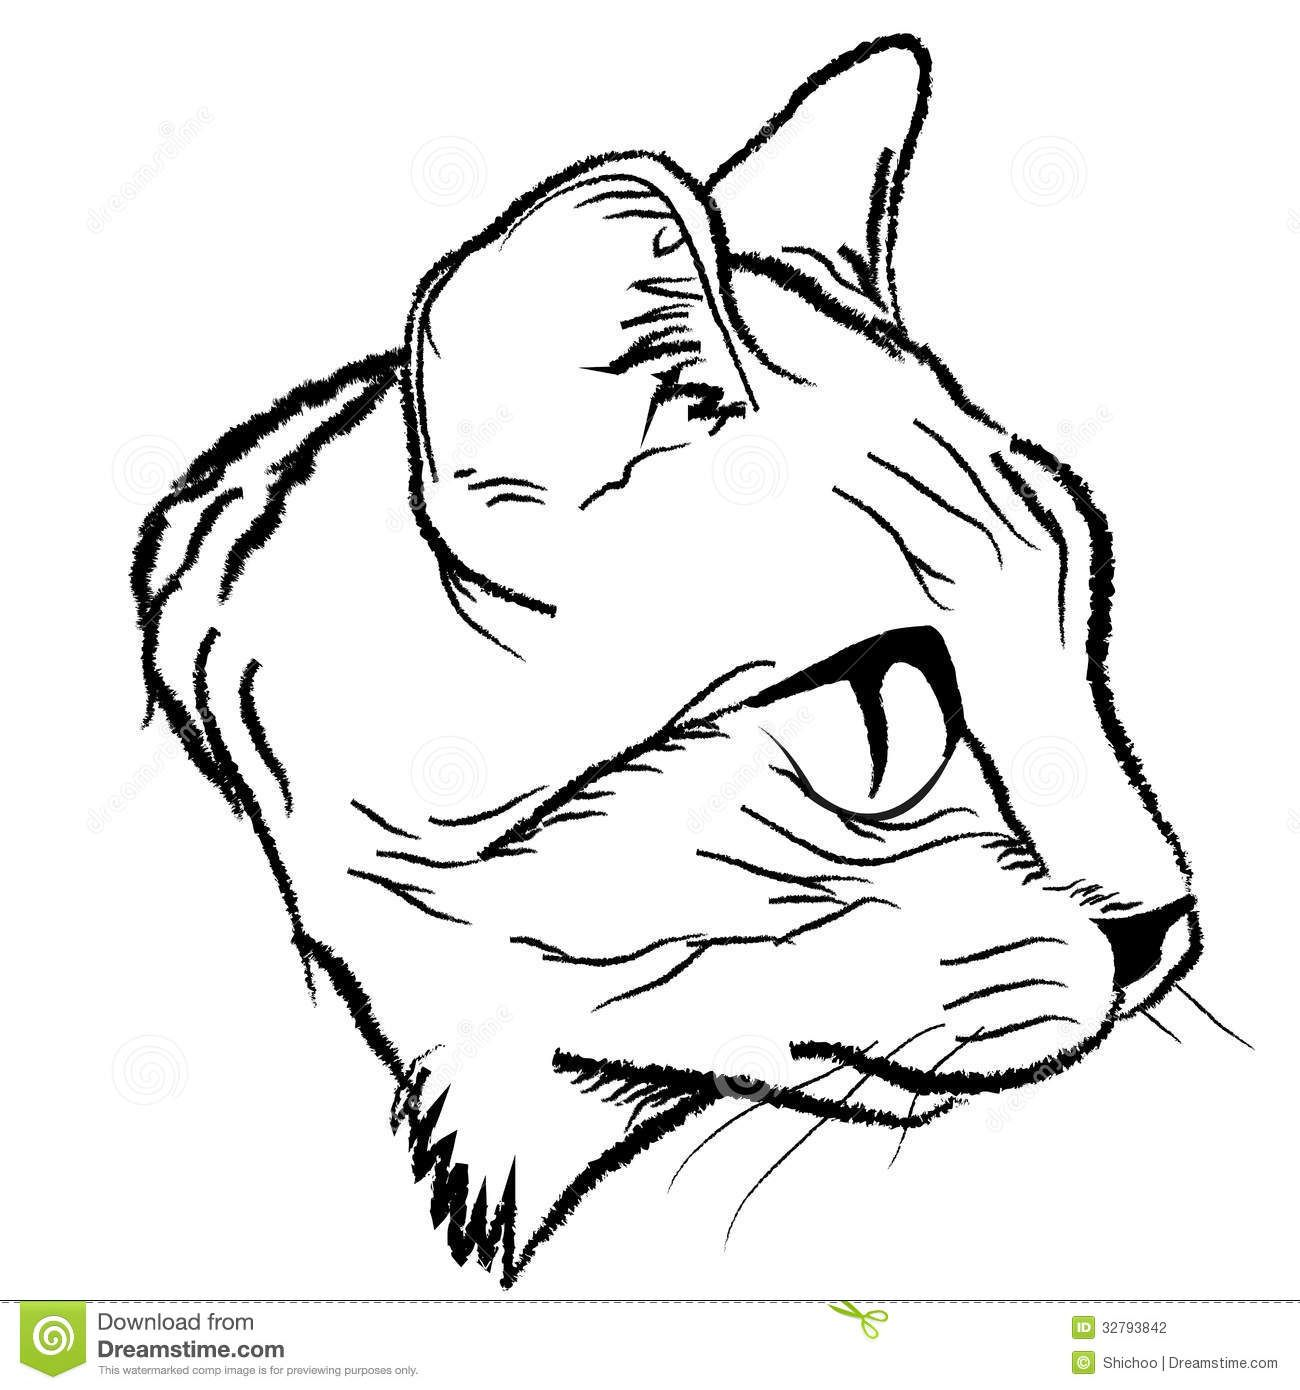 Line Drawing Of A Cat Face : Cat face illustration draw design by